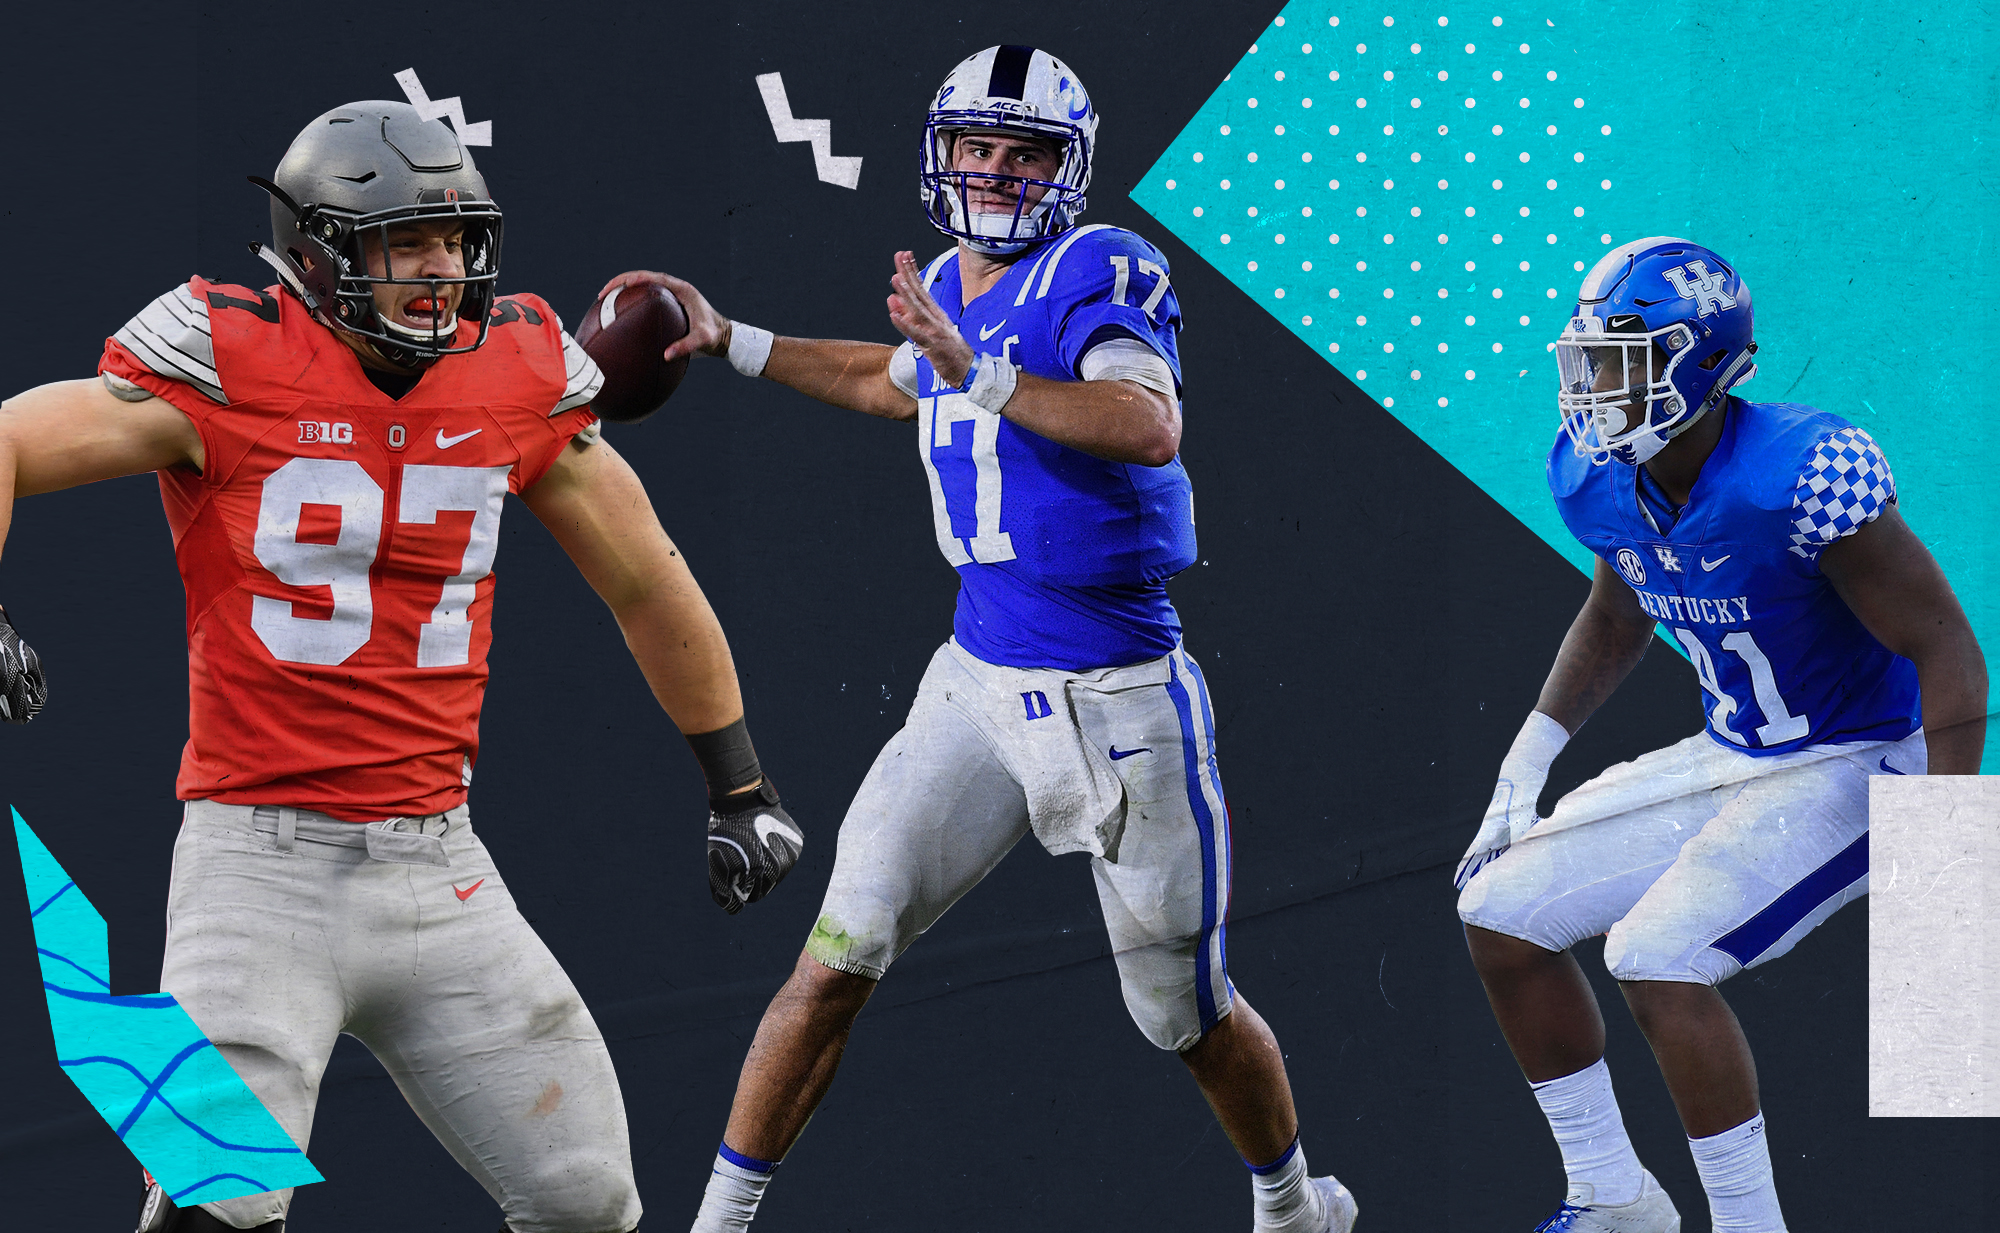 The NFL Draft Goldilocks Test: Every first round pick, from too hot to just right